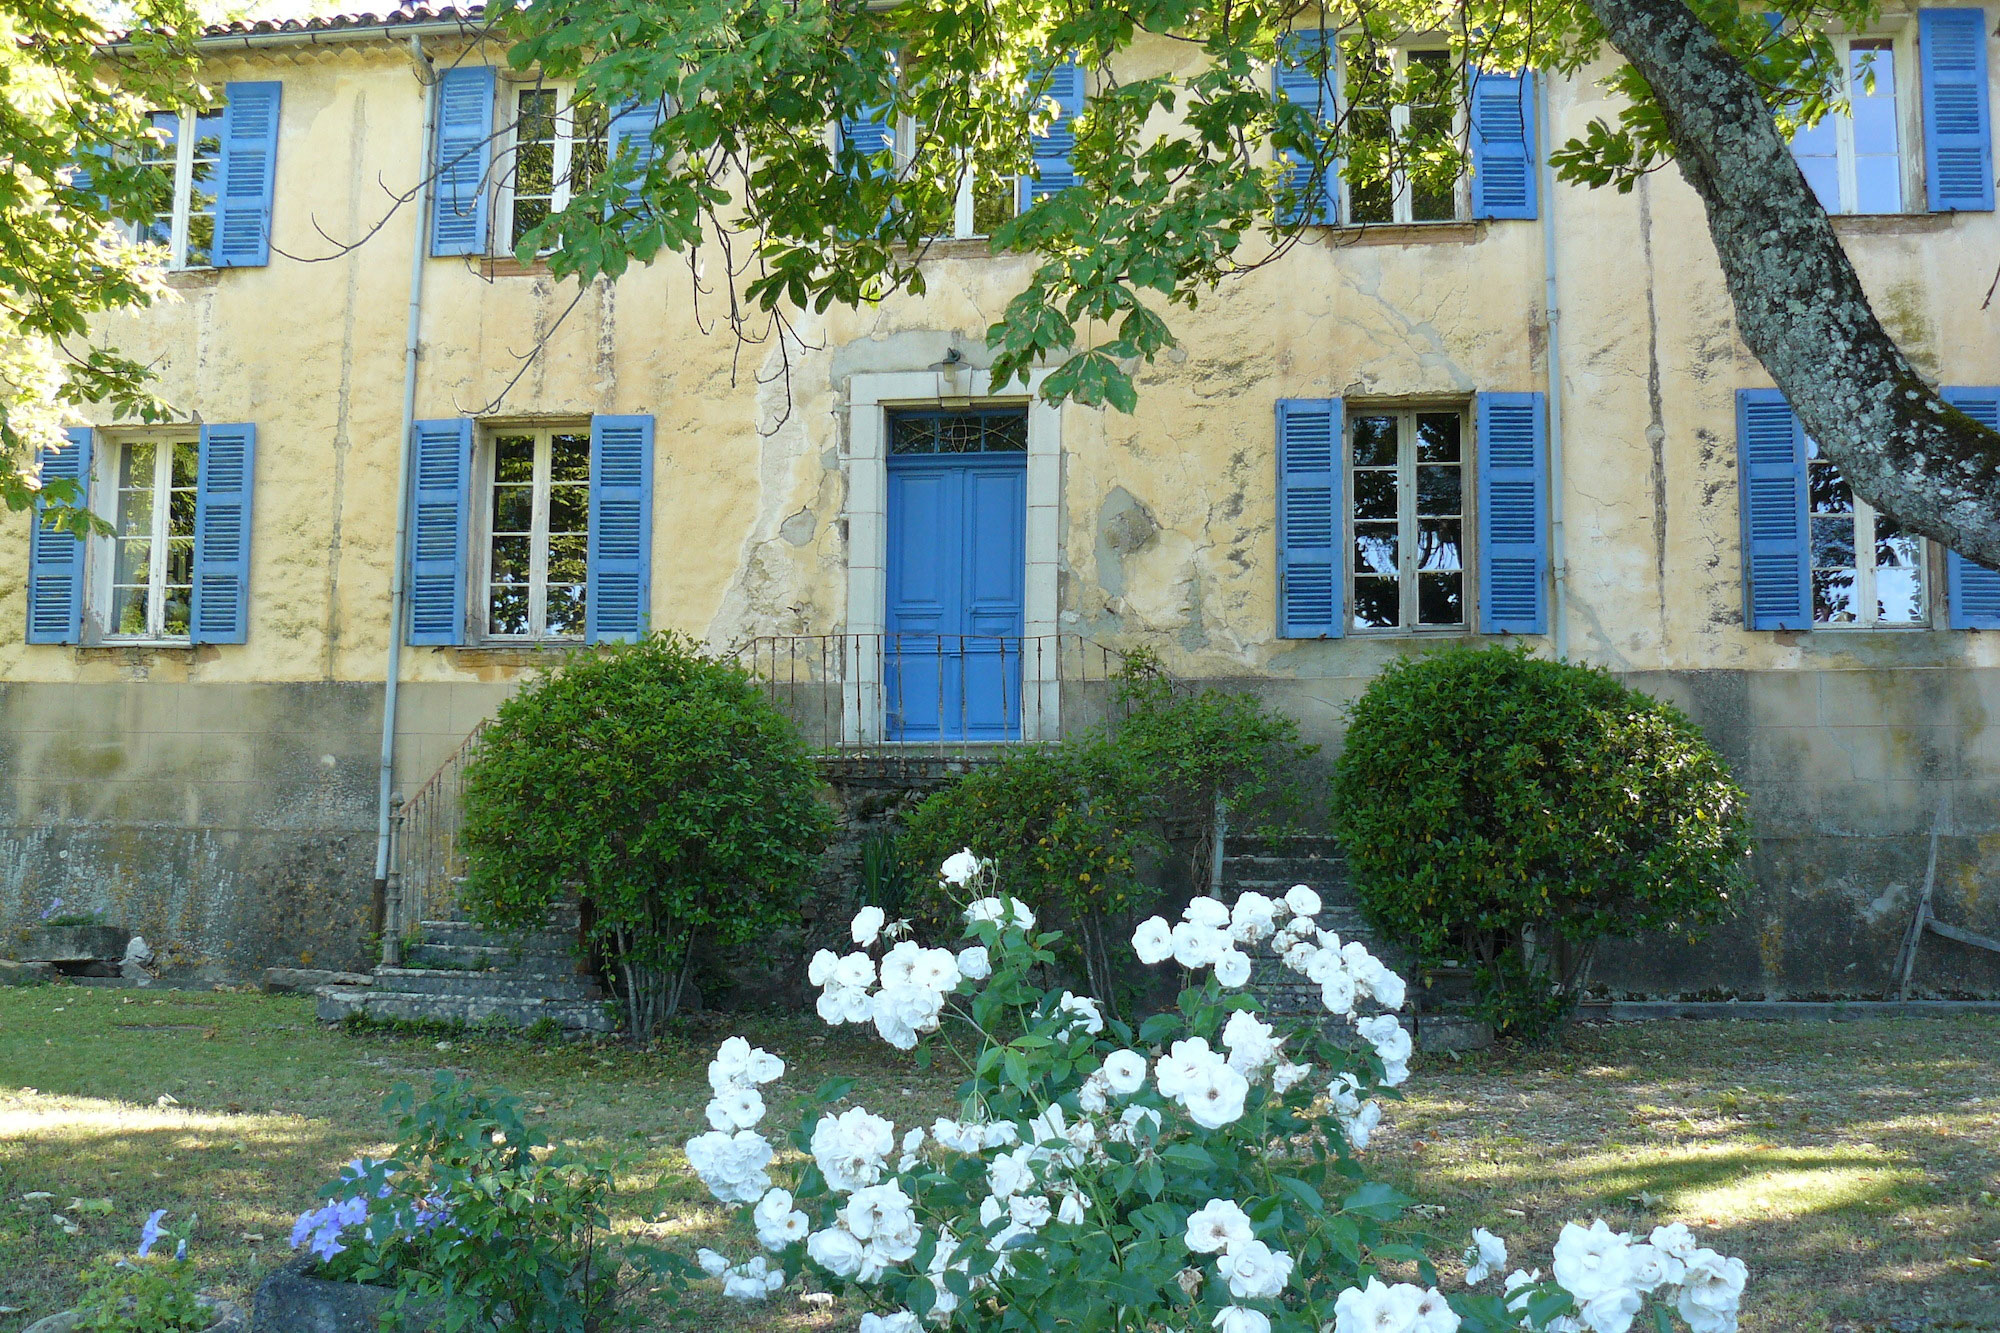 Vip real estate : Vignoble de charme